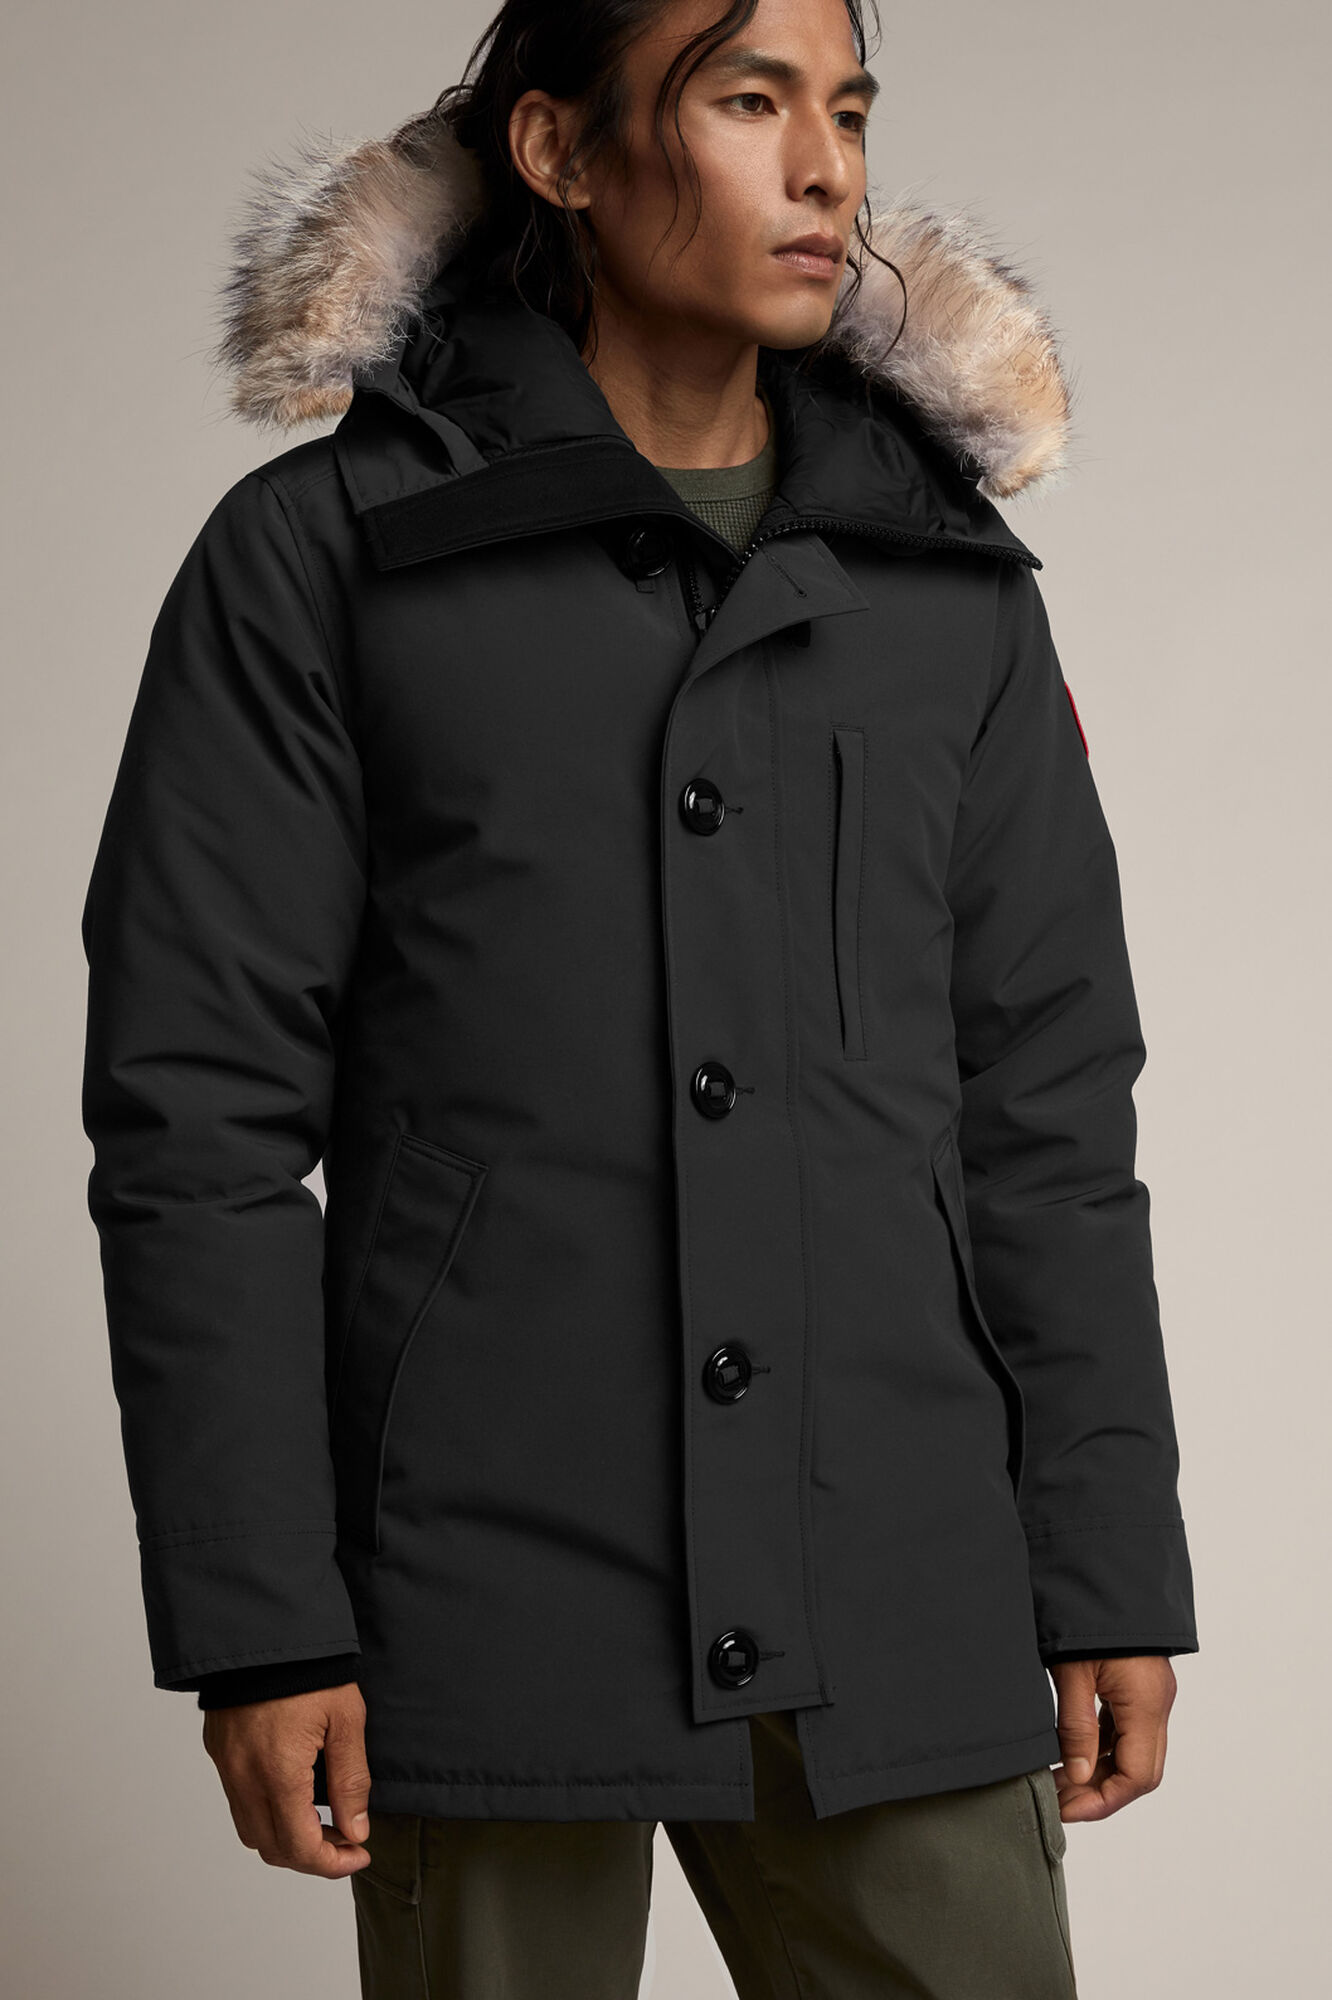 Canada Goose jackets outlet 2016 - Men's Arctic Program Chateau Parka | Canada Goose?